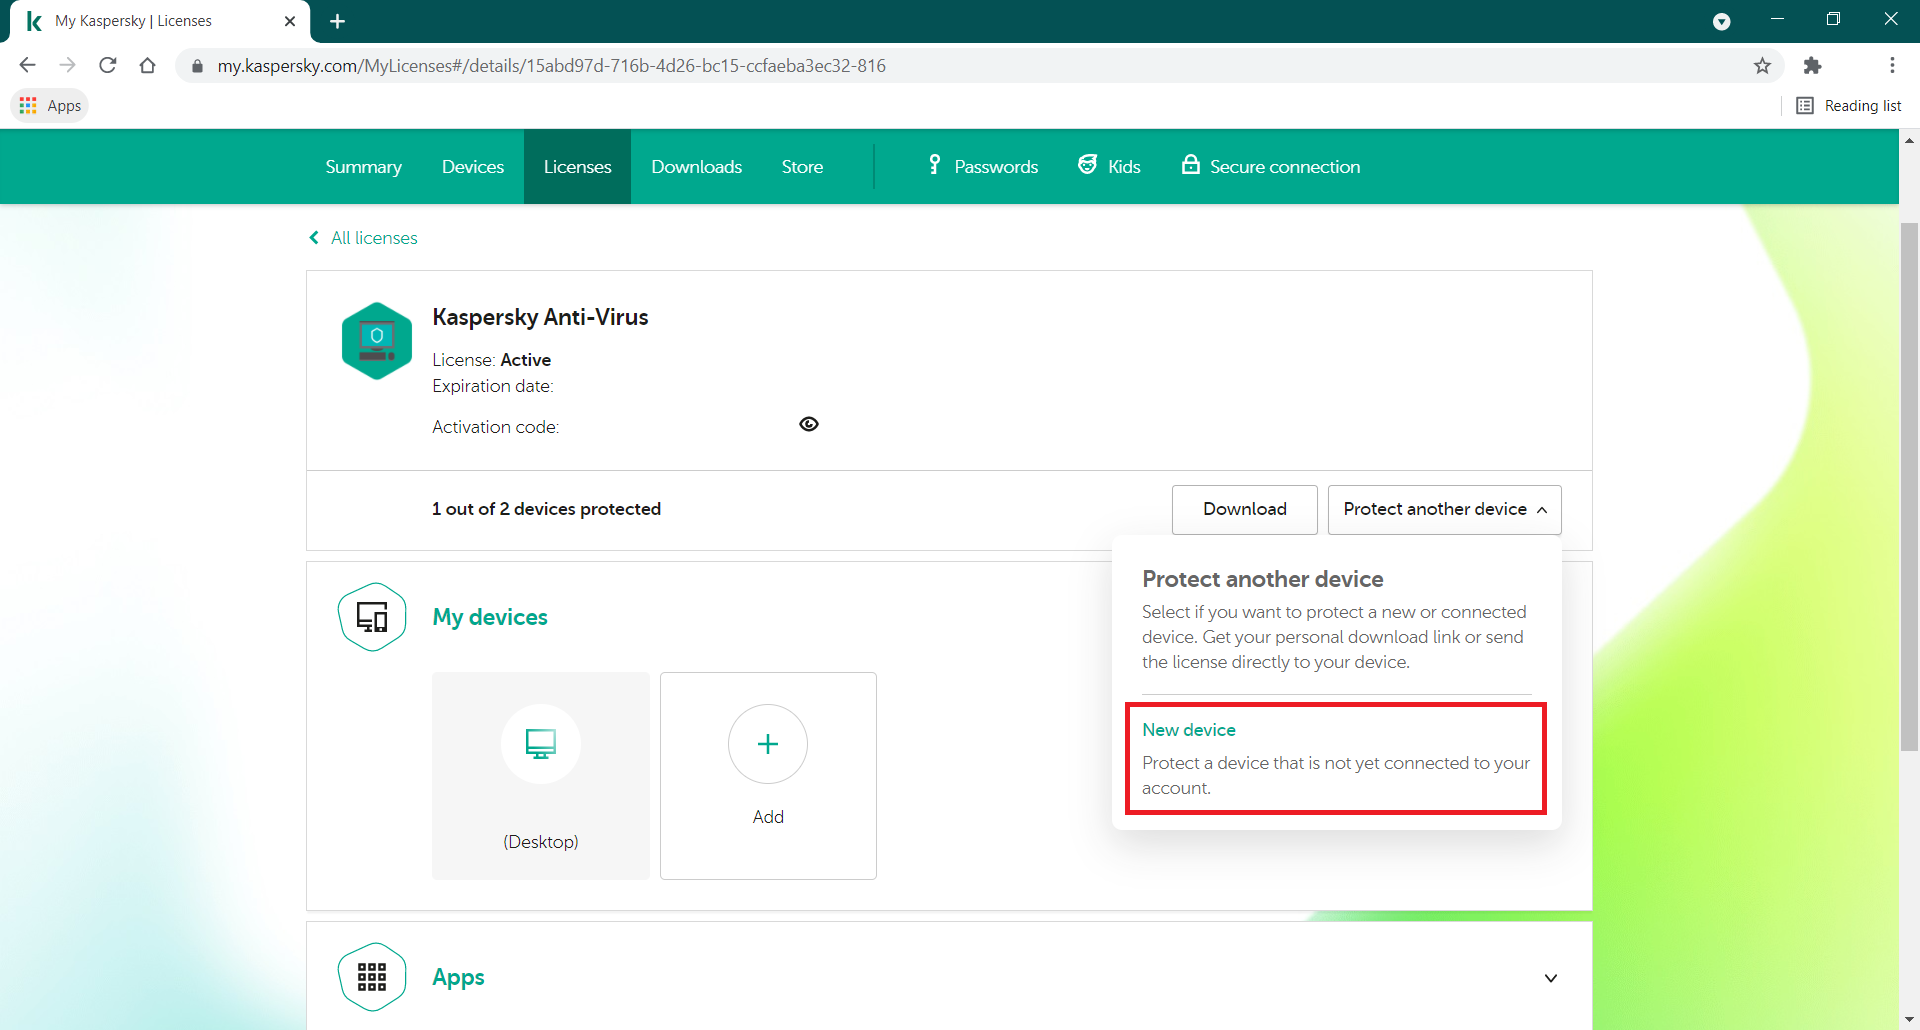 How to use My Kaspersky to send a license to a new device